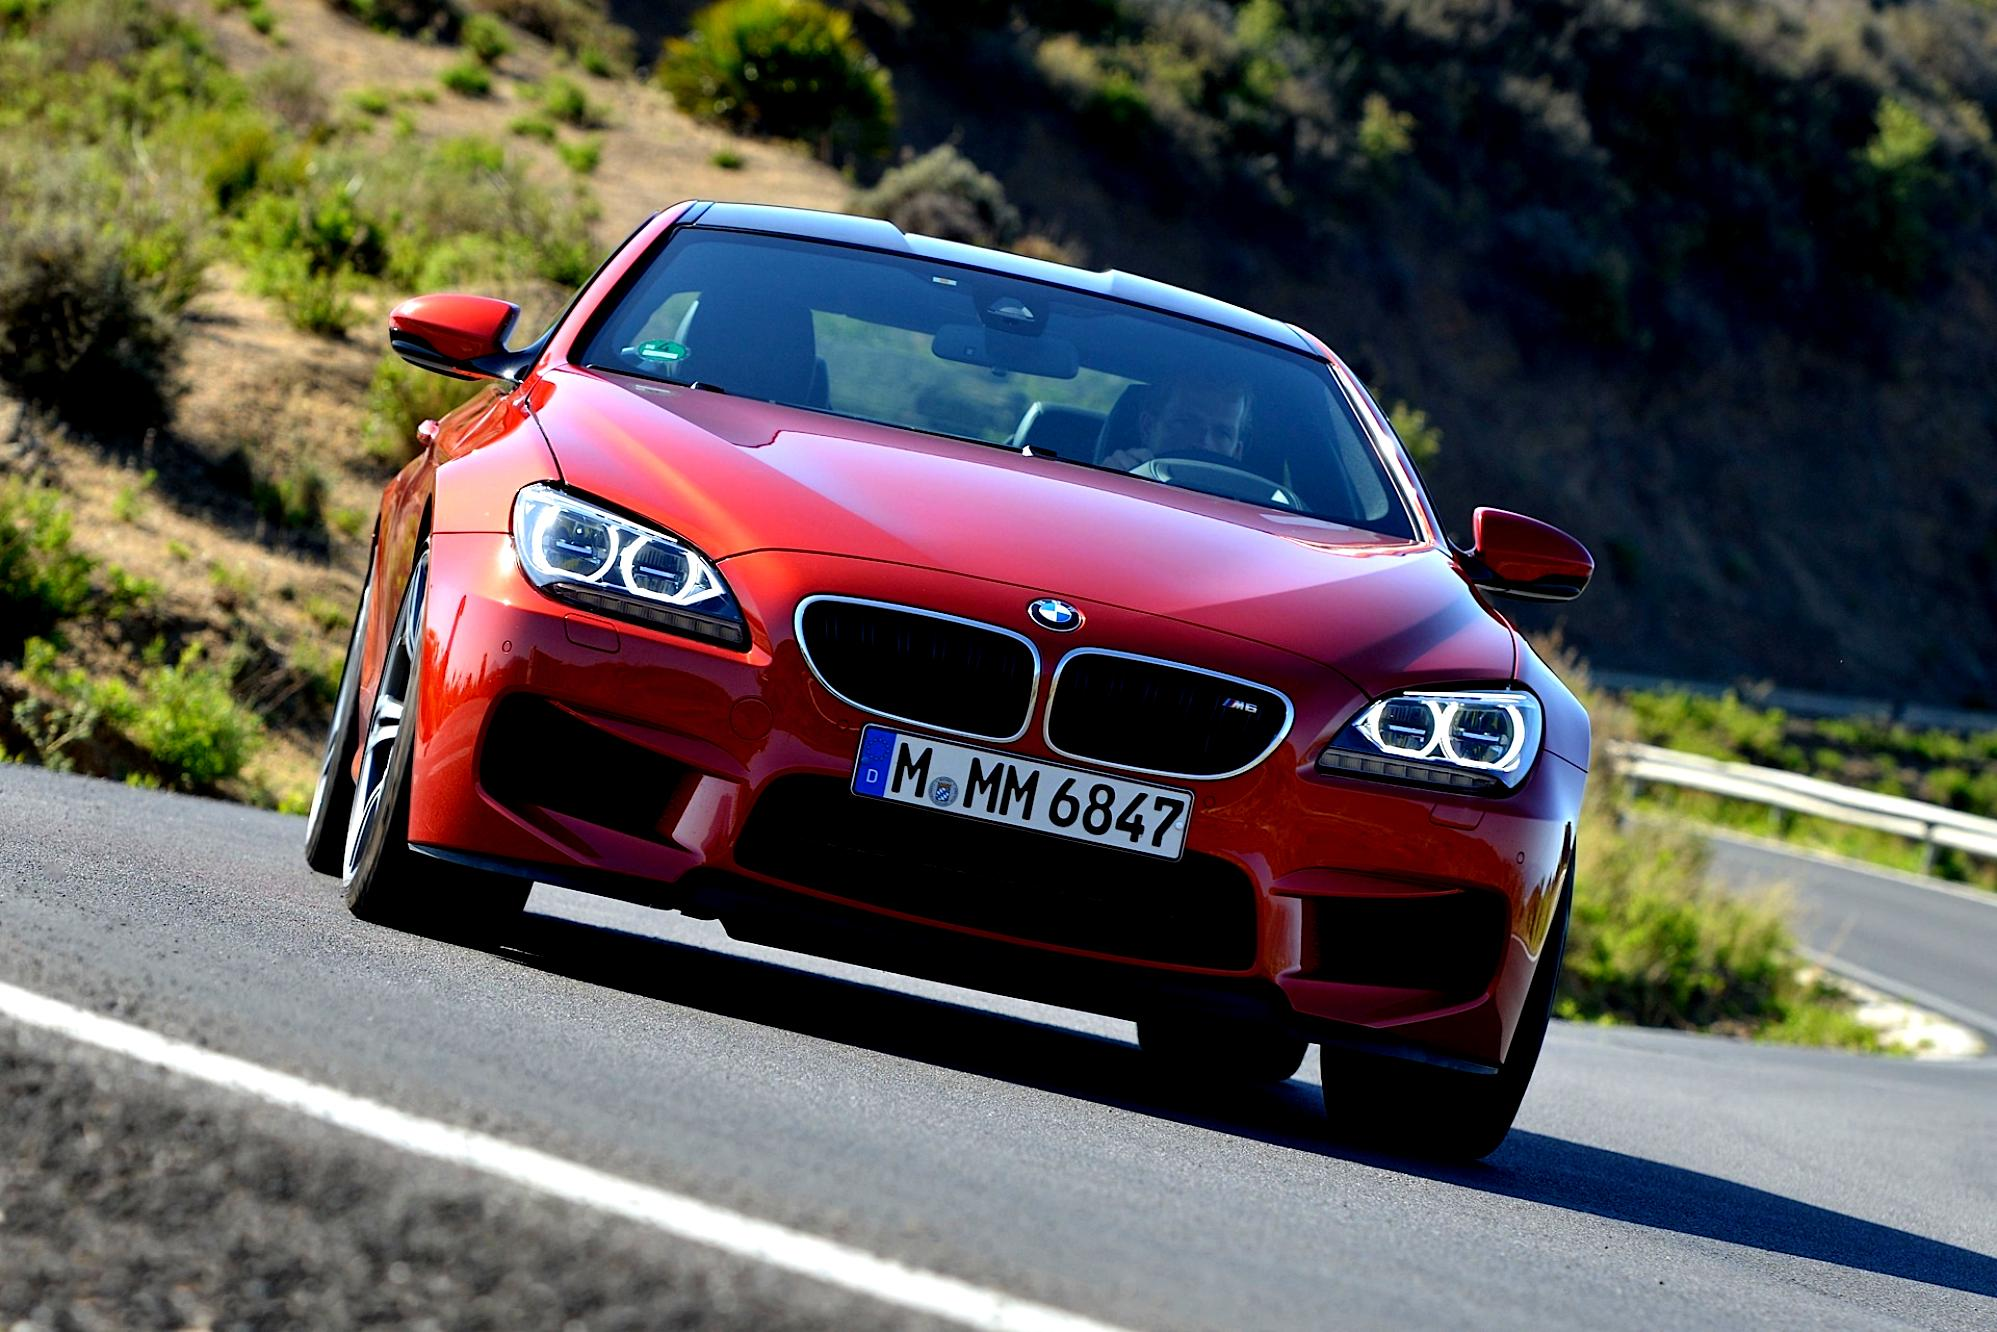 BMW M6 Coupe F13 2012 #64